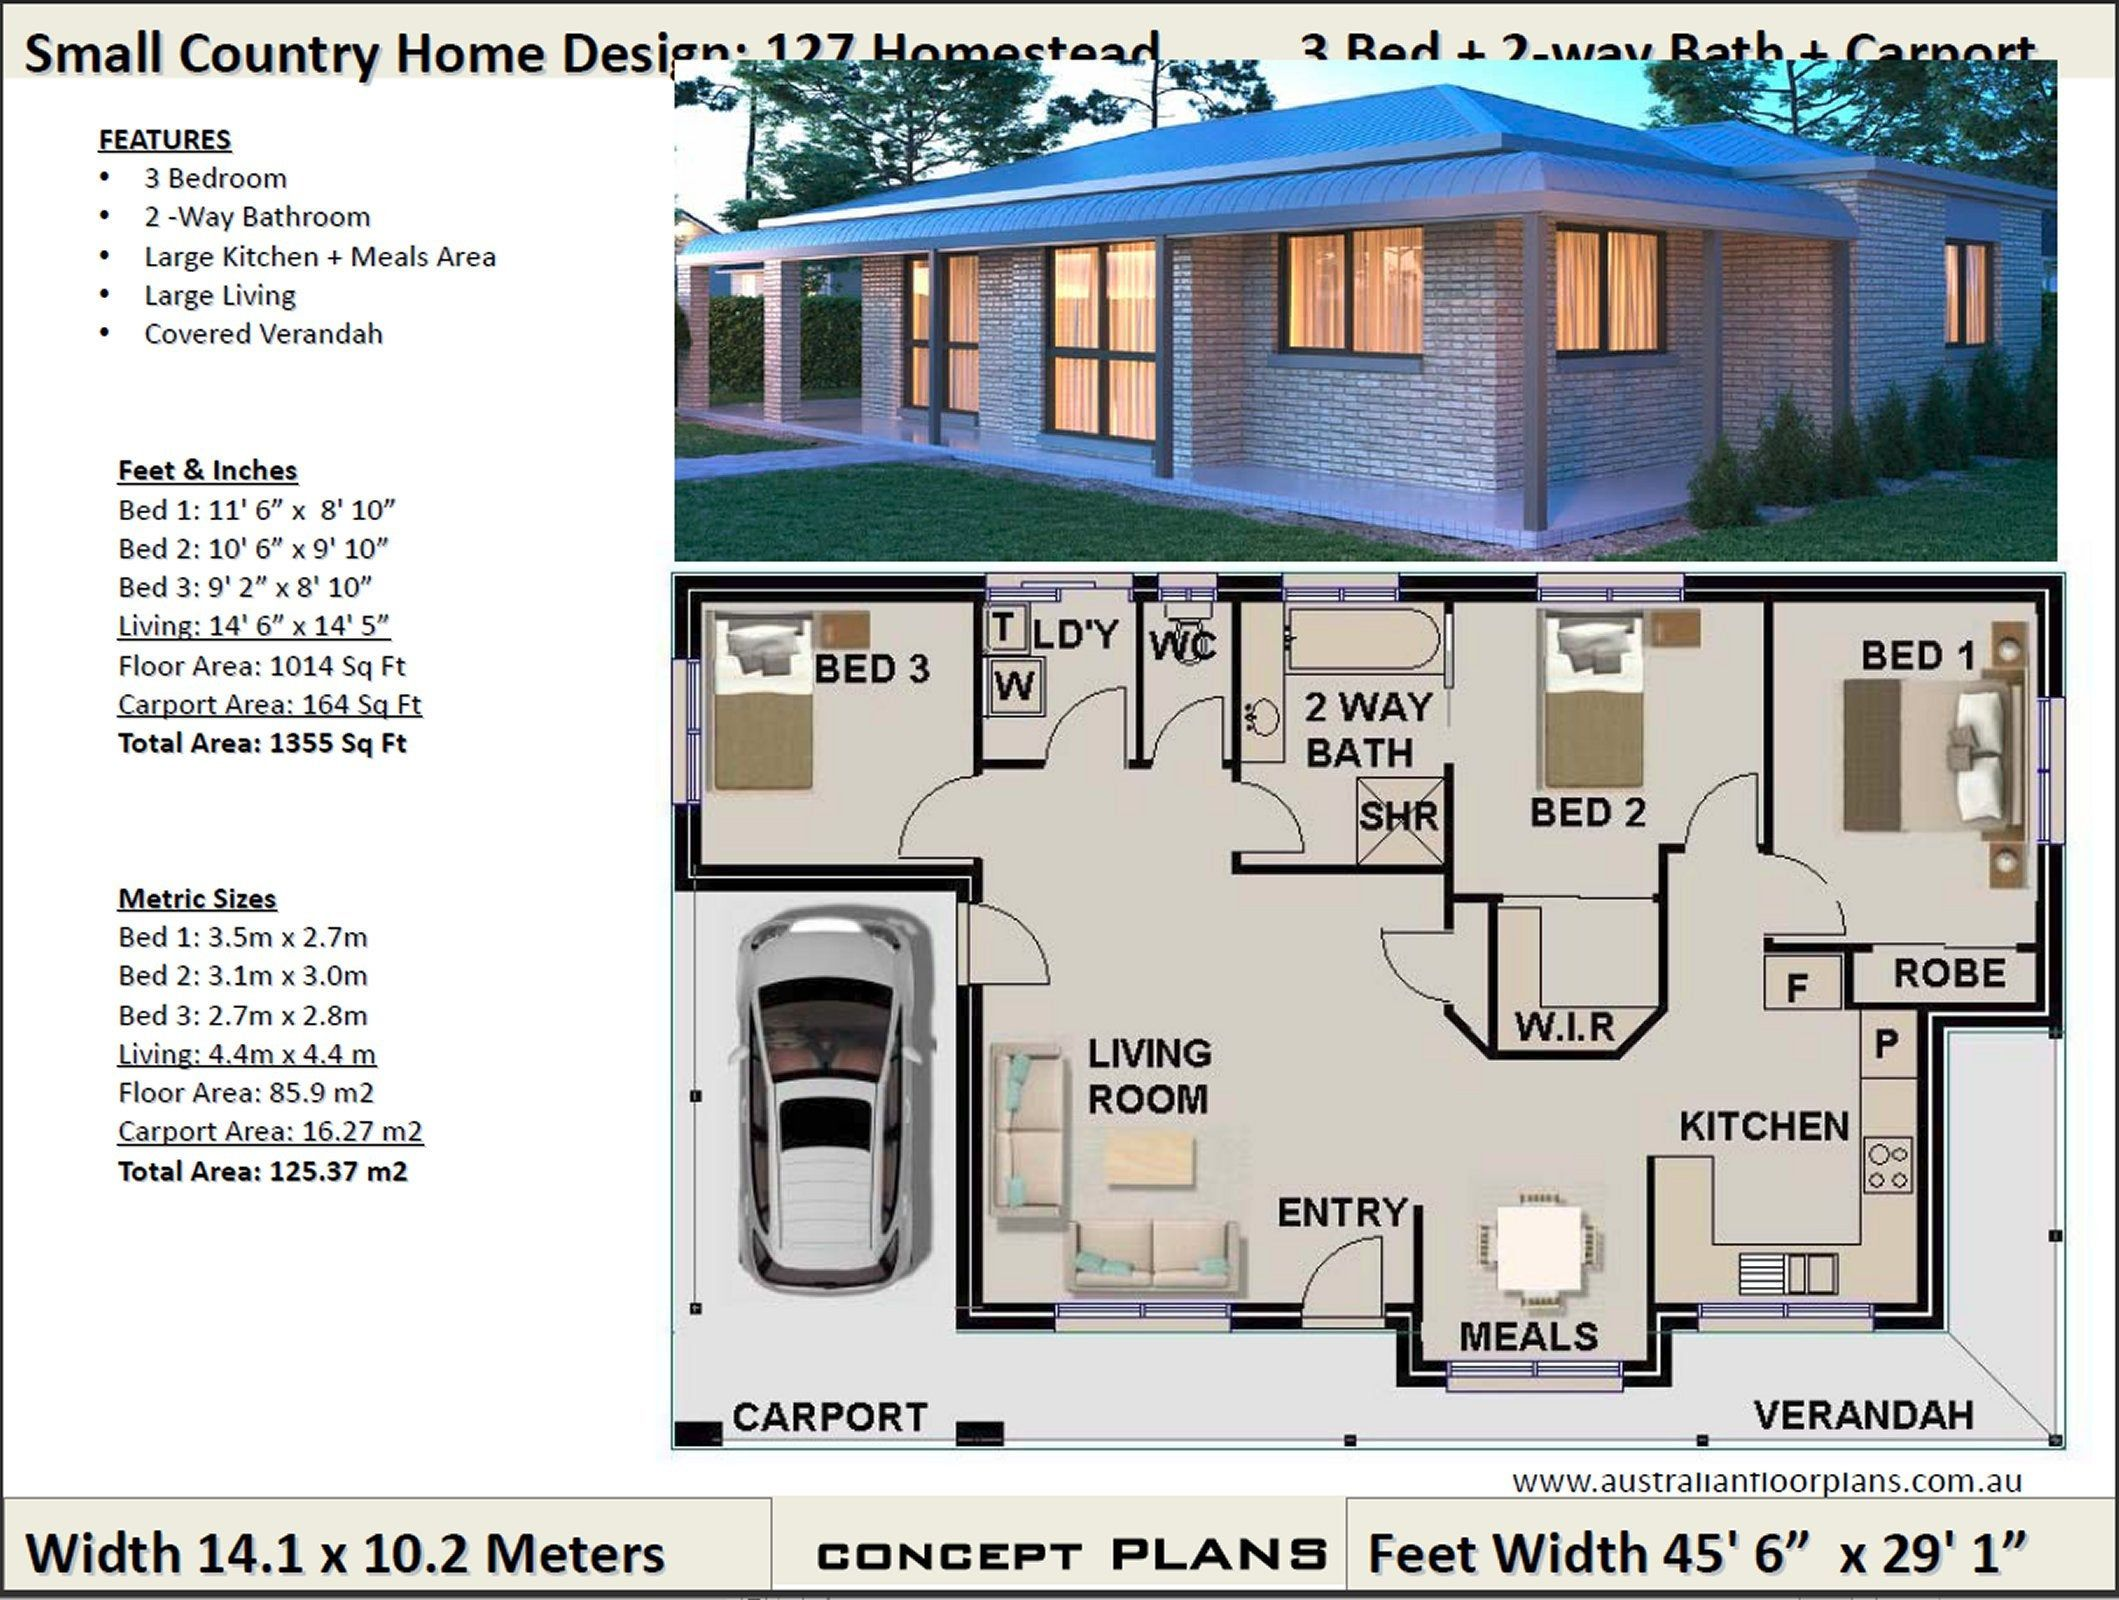 Small Country House Plan 1014 Sq Feet Or 85 9 M2 Small Etsy House Plans Australia House Plans For Sale House Plans